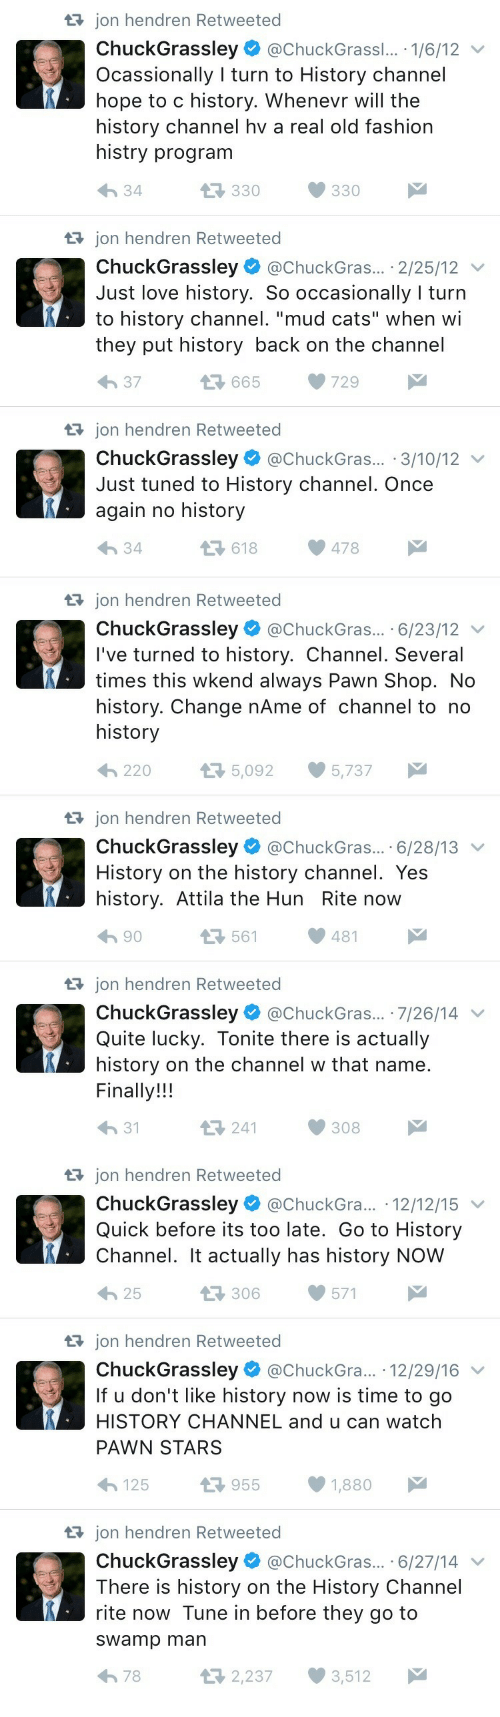 """Cats, Fashion, and Love: t3 jon hendren Retweeted  ChuckGrassley @ChuckGrass... . 1/6/12 v  Ocassionally I turn to History channel  hope to c history. Whenevr will the  history channel hv a real old fashion  histry program  330330  34  t3 jon hendren Retweeted  ChuckGrassley @ChuckGras... 2/25/12  Just love history. So occasionally I turn  they put history back on the channel  h 37  to history channel. """"mud cats"""" when wi  13 665 729  t3 jon hendren Retweeted  ChuckGrassley @ChuckGras.. 3/10/12 v  Just tuned to History channel. Once  again no history  34  618478   tajon hendren Retweeted  ChuckGrassley@ChuckGras... .6/23/12 v  I've turned to history. Channel. Several  times this wkend always Pawn Shop. No  history. Change nAme of channel to no  history  220  5,092 5,737  tajon hendren Retweeted  ChuckGrassley@ChuckGras.. 6/28/13  History on the history channel. Yes  history. Attila the Hun Rite now  h 90  561481  tRjon hendren Retweeted  ChuckGrassley. @ChuckGras...-7/26/14  Quite lucky. Tonite there is actually  history on the channel w that name  Finally!!!  h 31  241308   t3 jon hendren Retweeted  ChuckGrassley @ChuckGra... 12/12/15  Quick before its too late. Go to History  Channel. It actually has history NOW  わ25  306571  t3 jon hendren Retweeted  ChuckGrassley@ChuckGra.. 12/29/16 v  If u don't like history now is time to go  HISTORY CHANNEL and u can watch  PAWN STARS  125 1.7 955 1,880  t3 jon hendren Retweeted  ChuckGrassley @chuckGras... 6/27/14  There is history on the History Channel  rite now Tune in before they go to  sWamp man  2,237 3,512  78"""